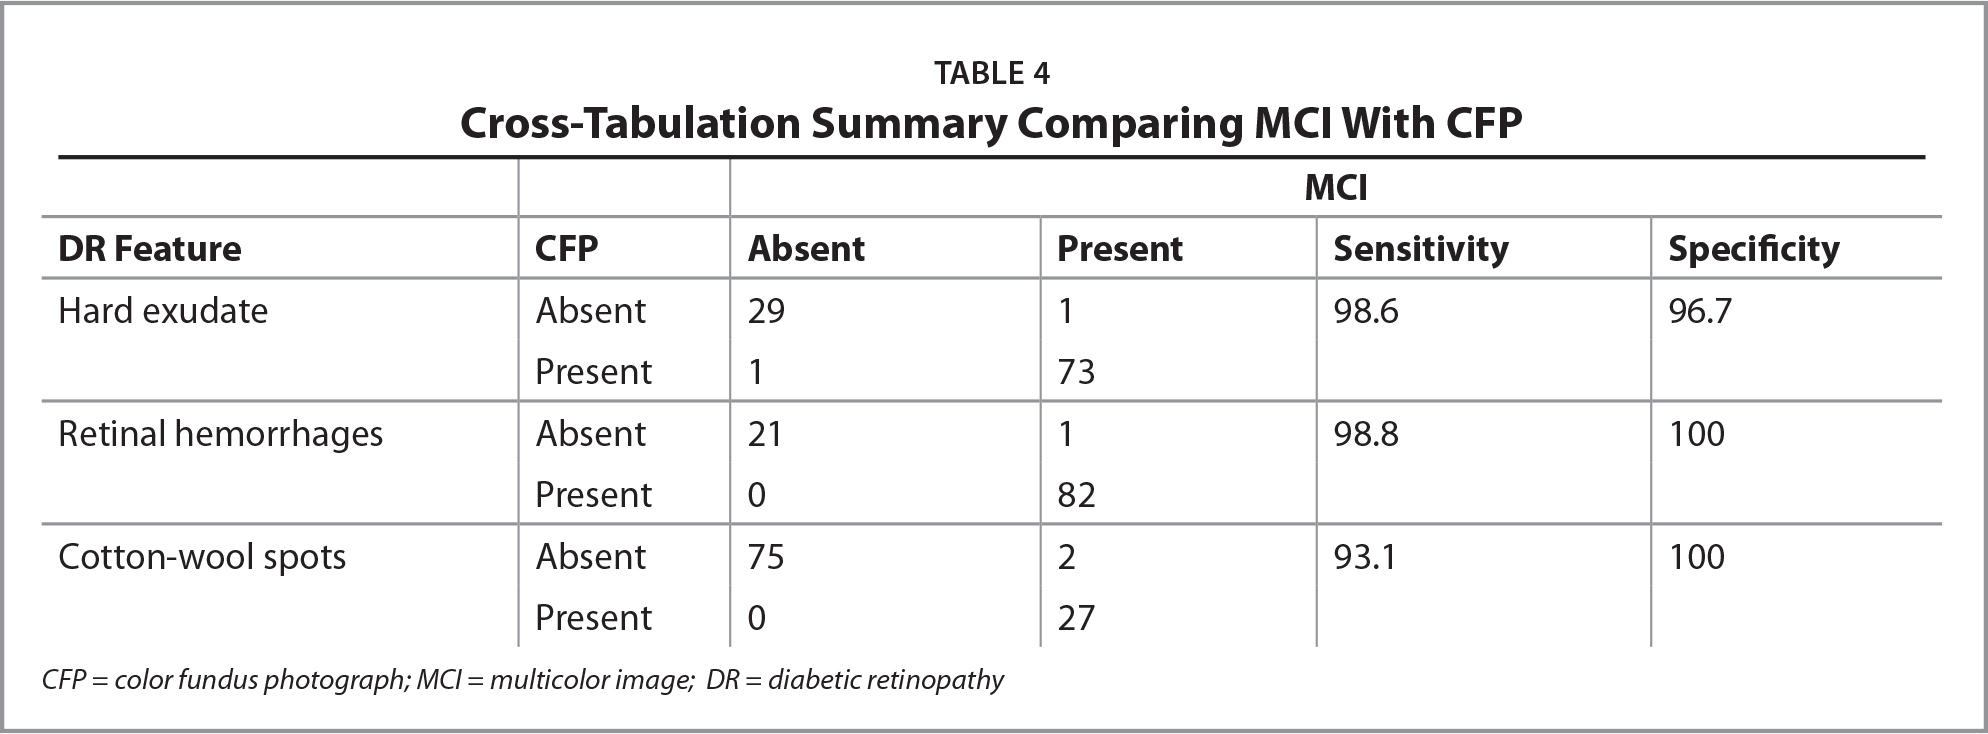 Cross-Tabulation Summary Comparing MCI With CFP